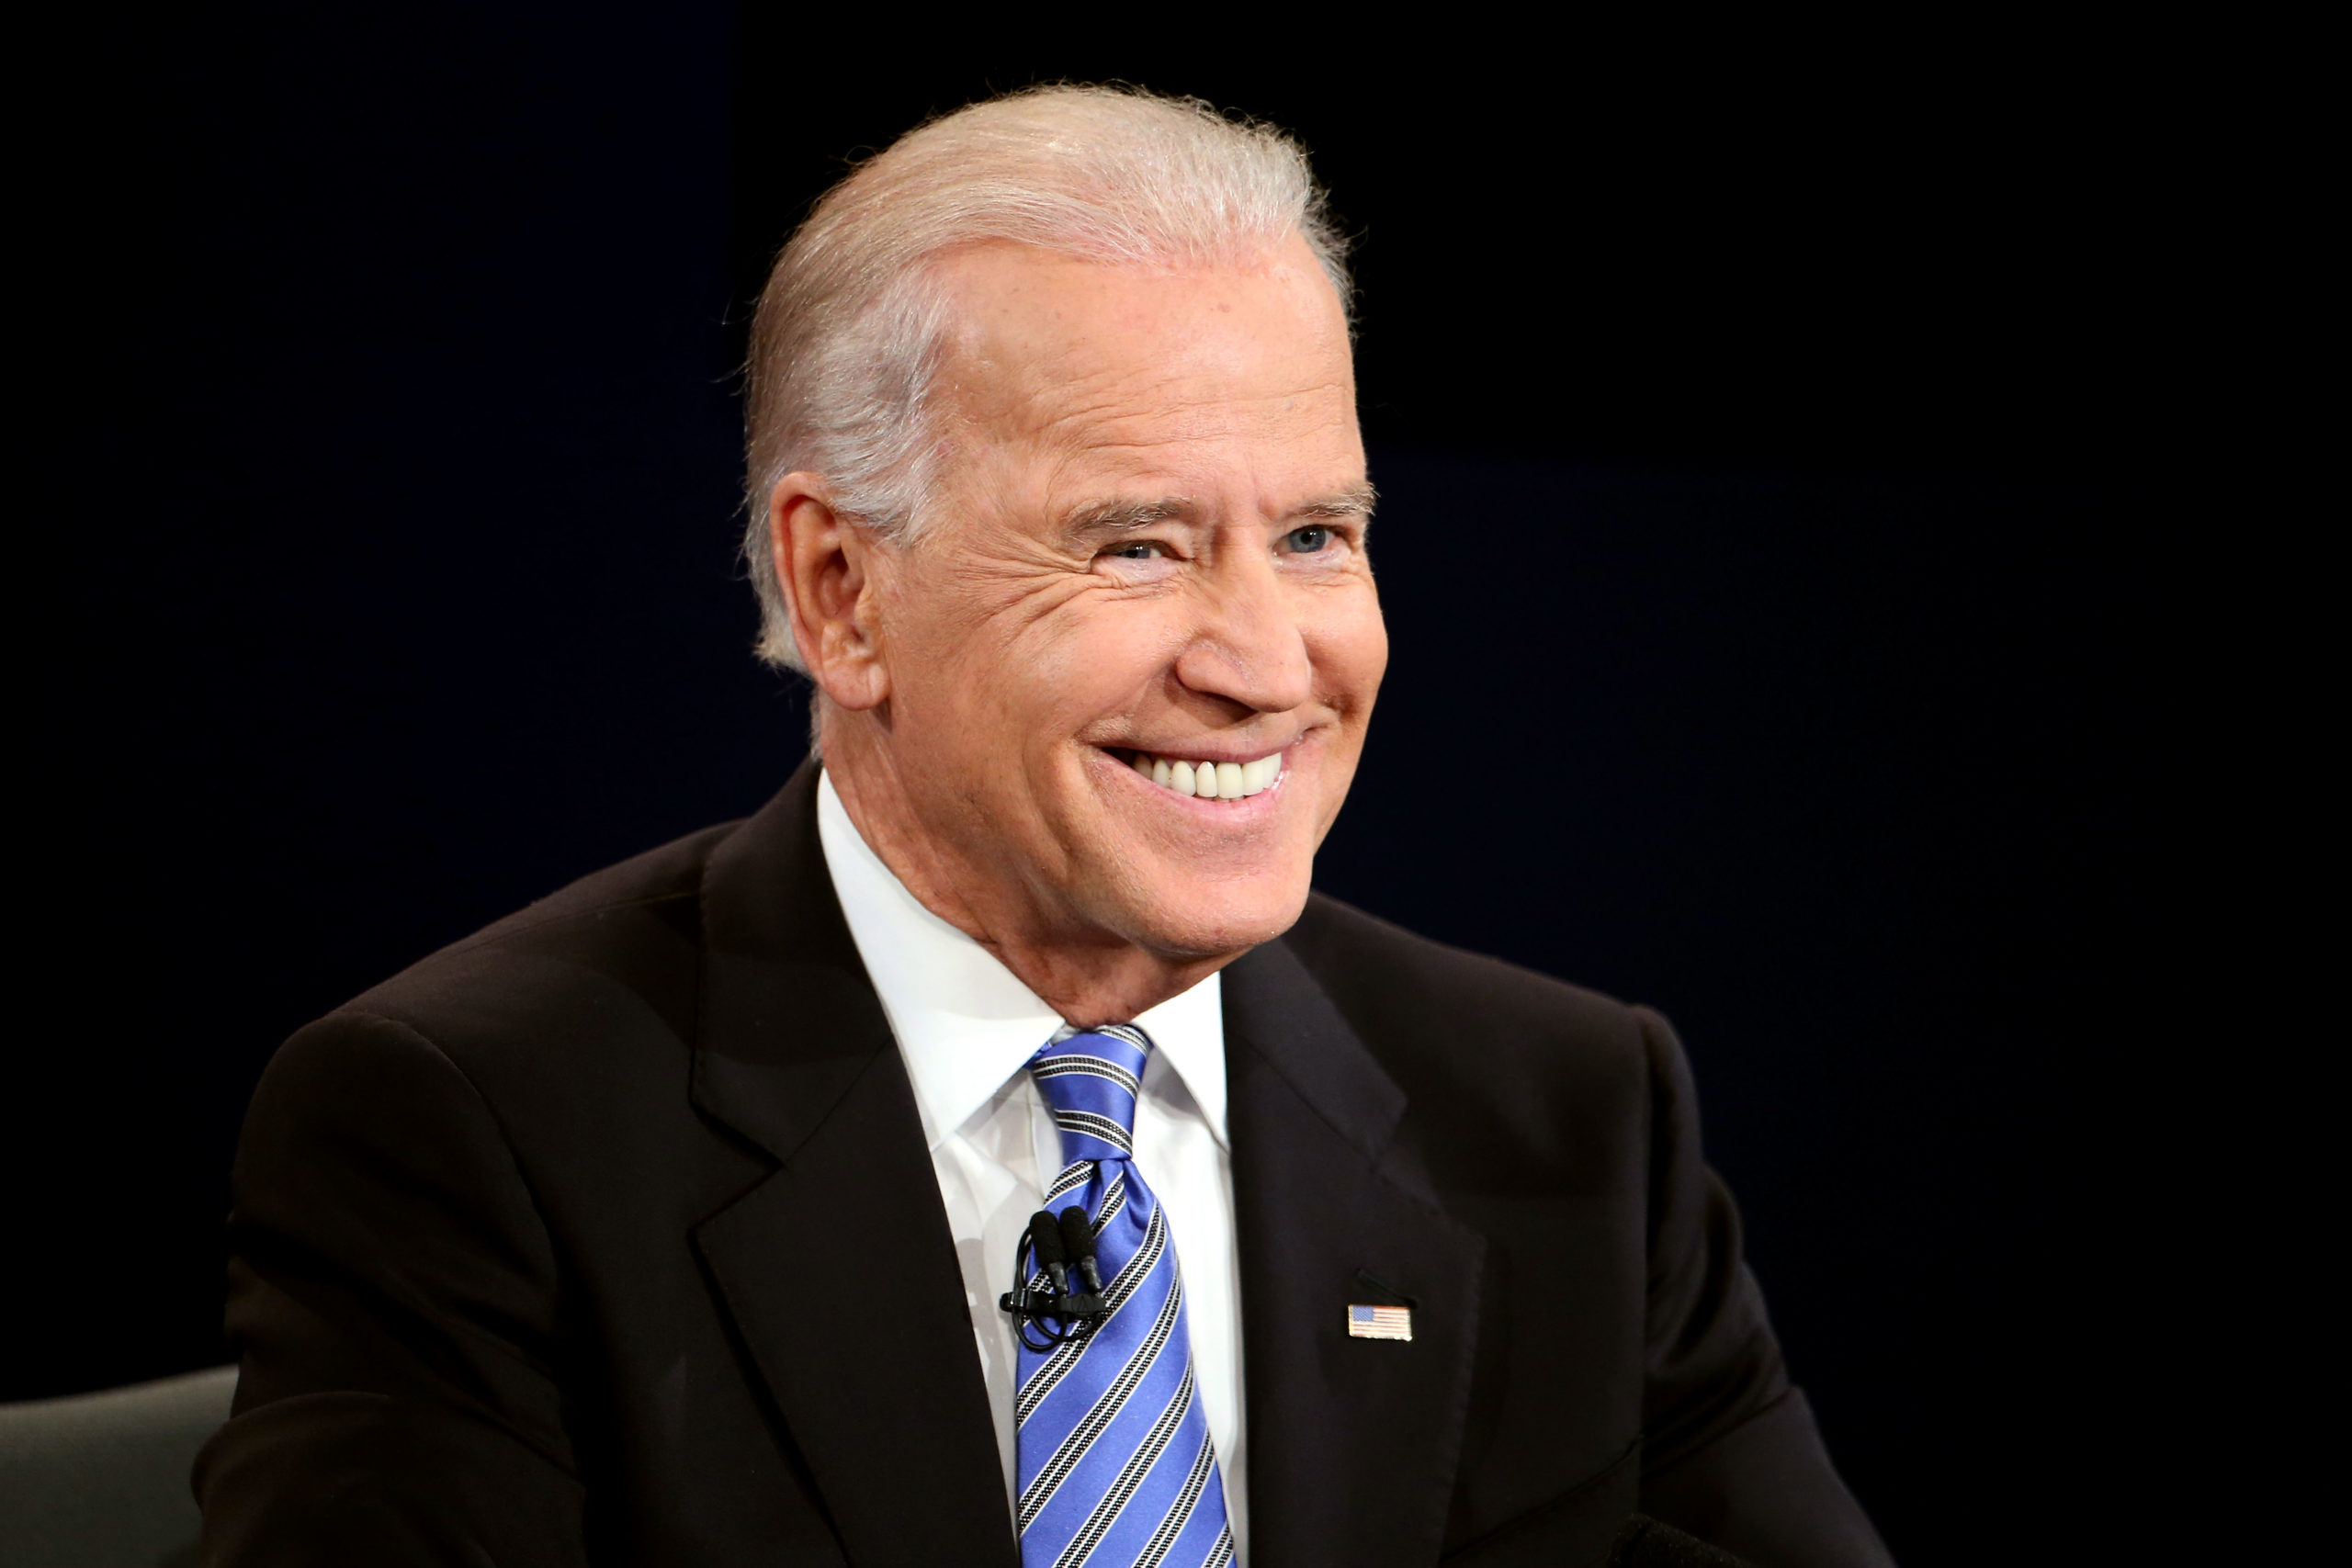 U.S. Vice President Joe Biden smiles during the vice presidential debate at Centre College October 11, 2012 in Danville, Kentucky. This is the second of four debates during the presidential election season and the only debate between the vice presidential candidates before the closely-contested election November 6. (Photo by Chip Somodevilla/Getty Images)